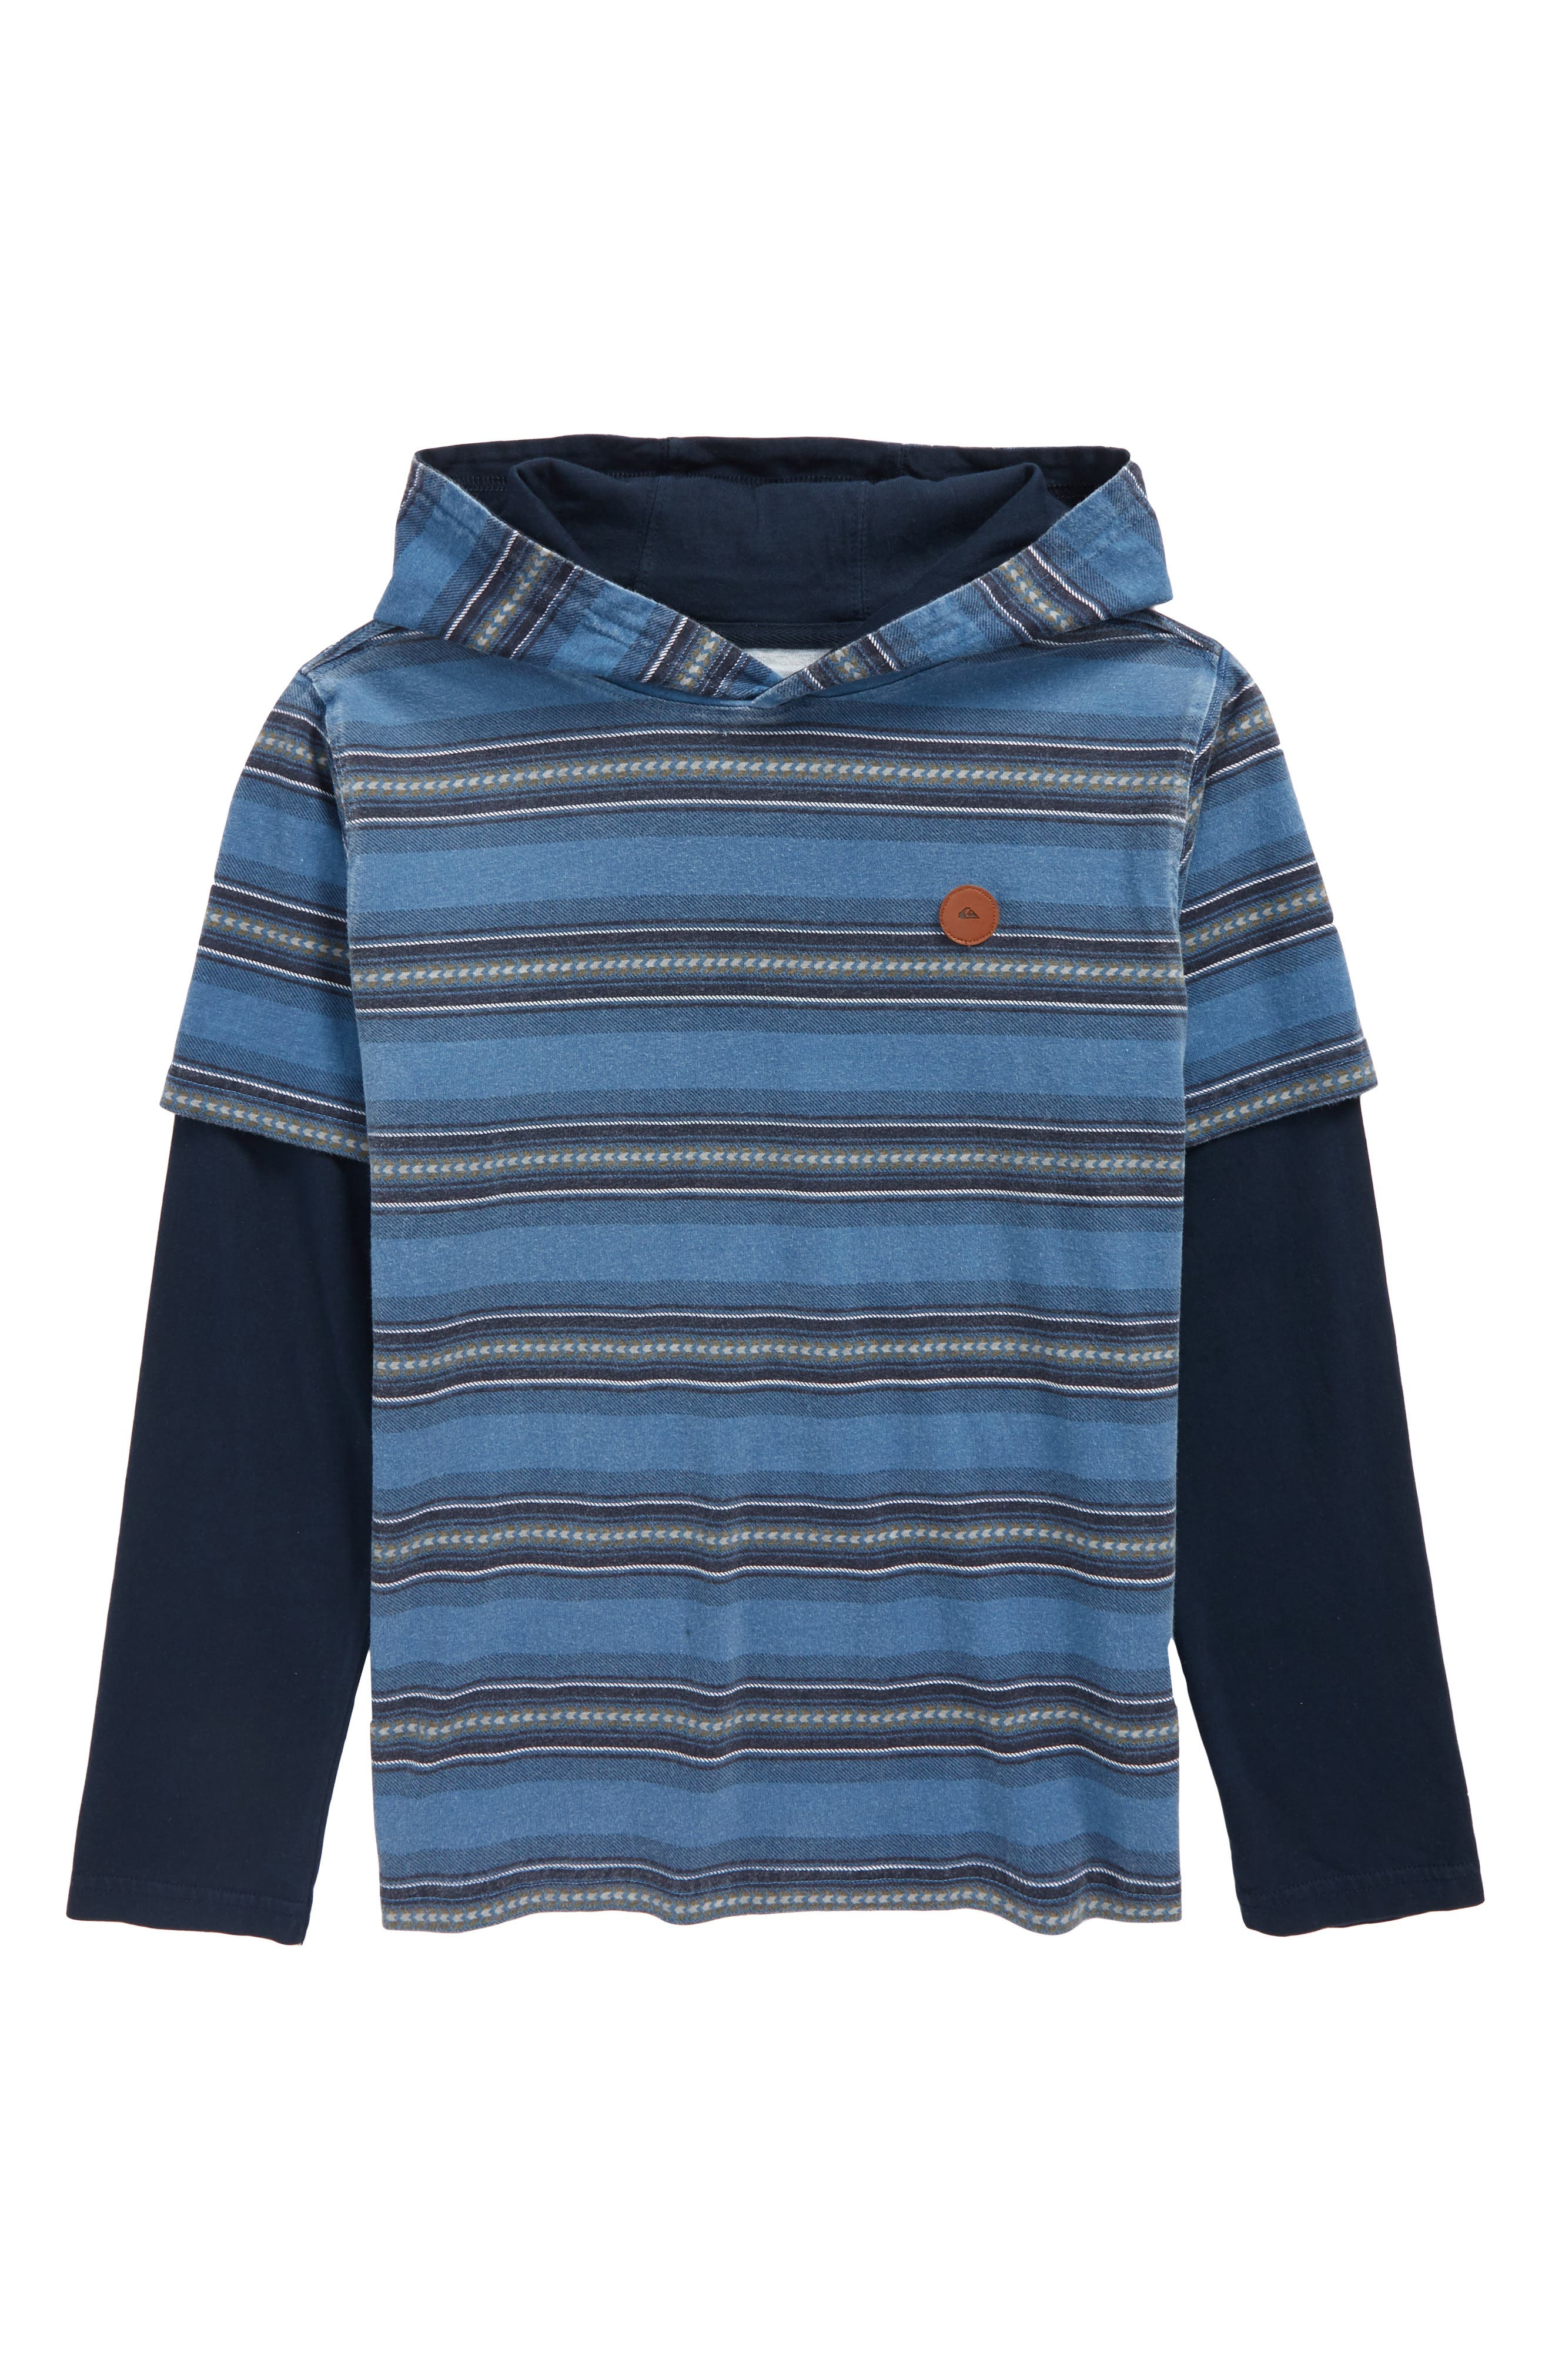 Quiksilver Haleiwa Layered Hooded Pullover (Big Boys)